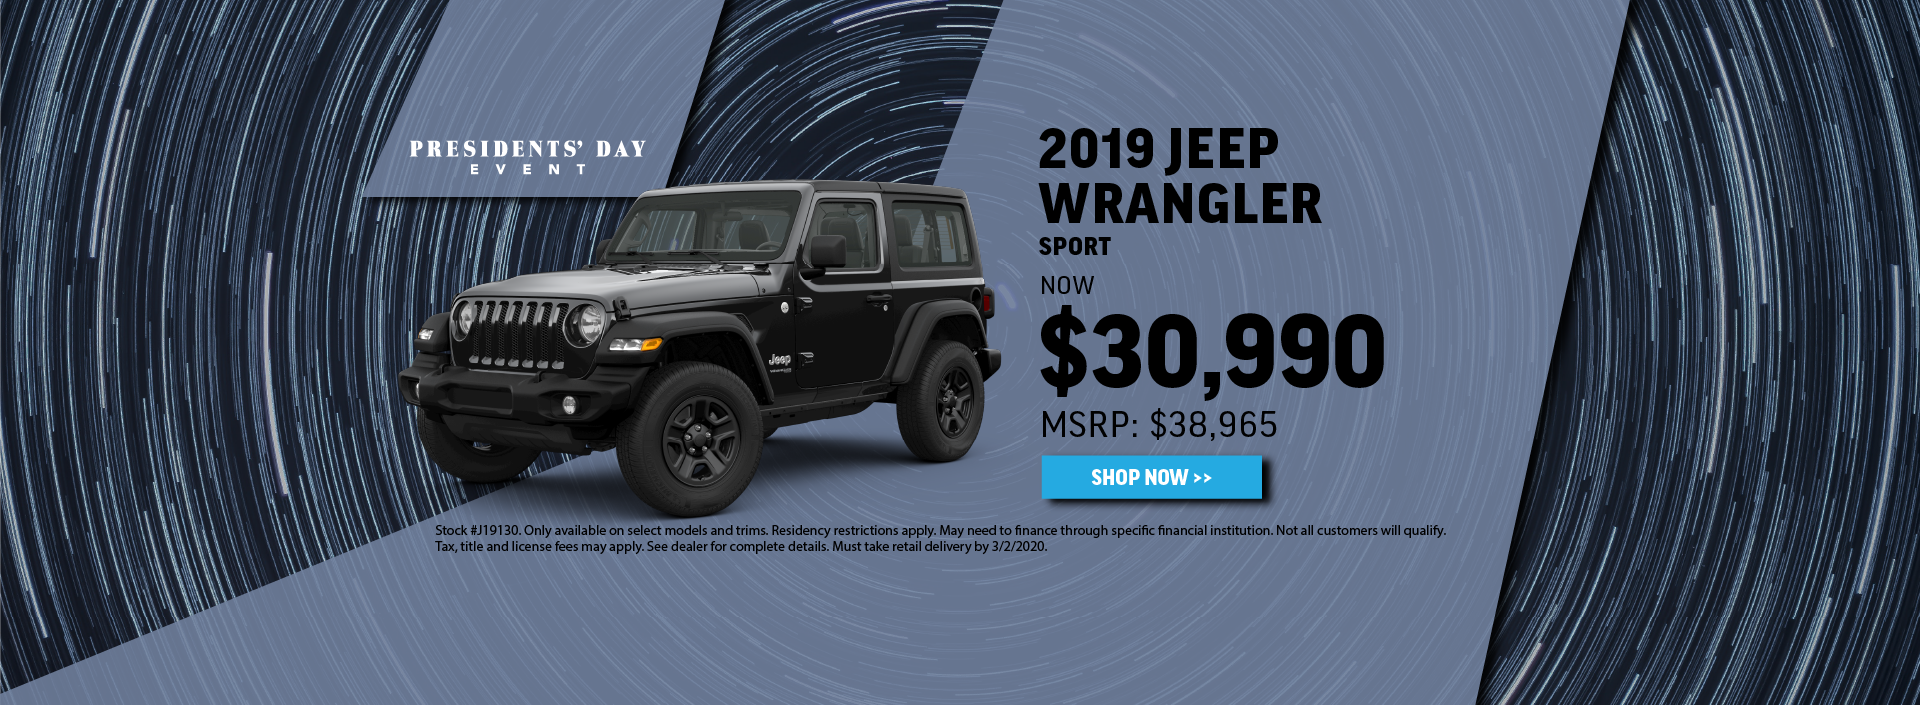 2019 Jeep Wrangler Offer